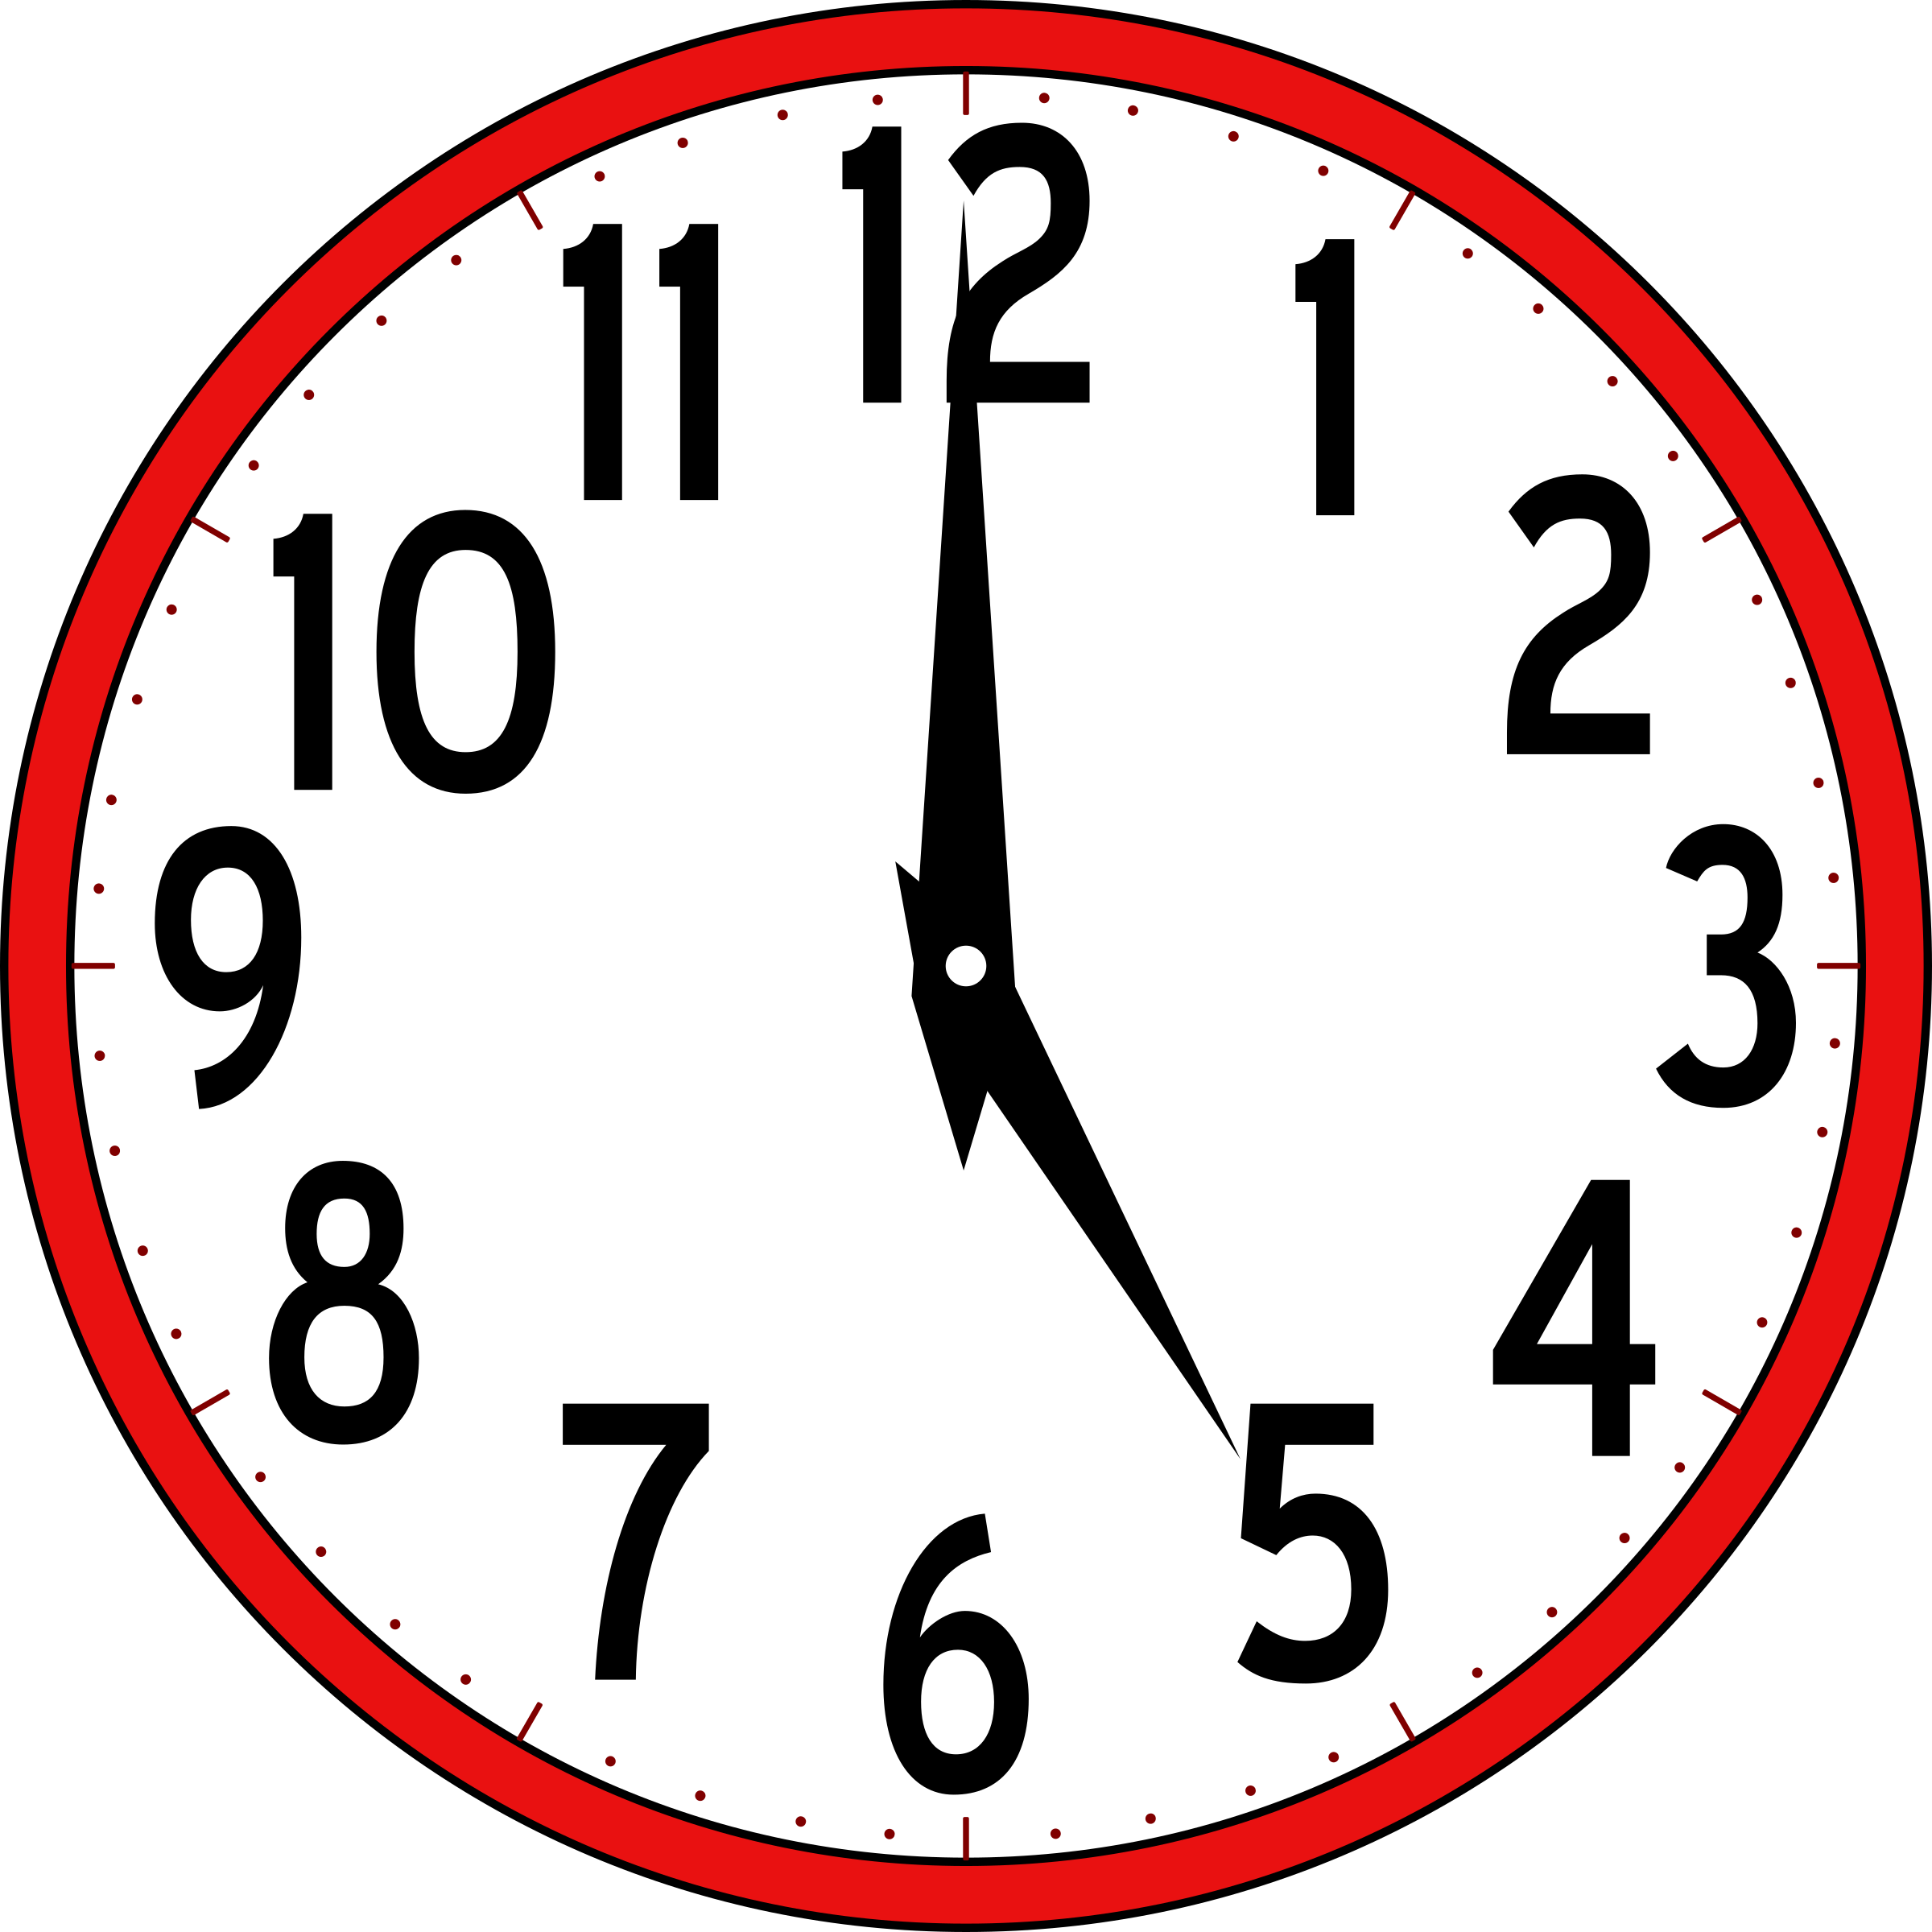 2400x2400 Clock Clip Art Without Hands Free Clipart Images